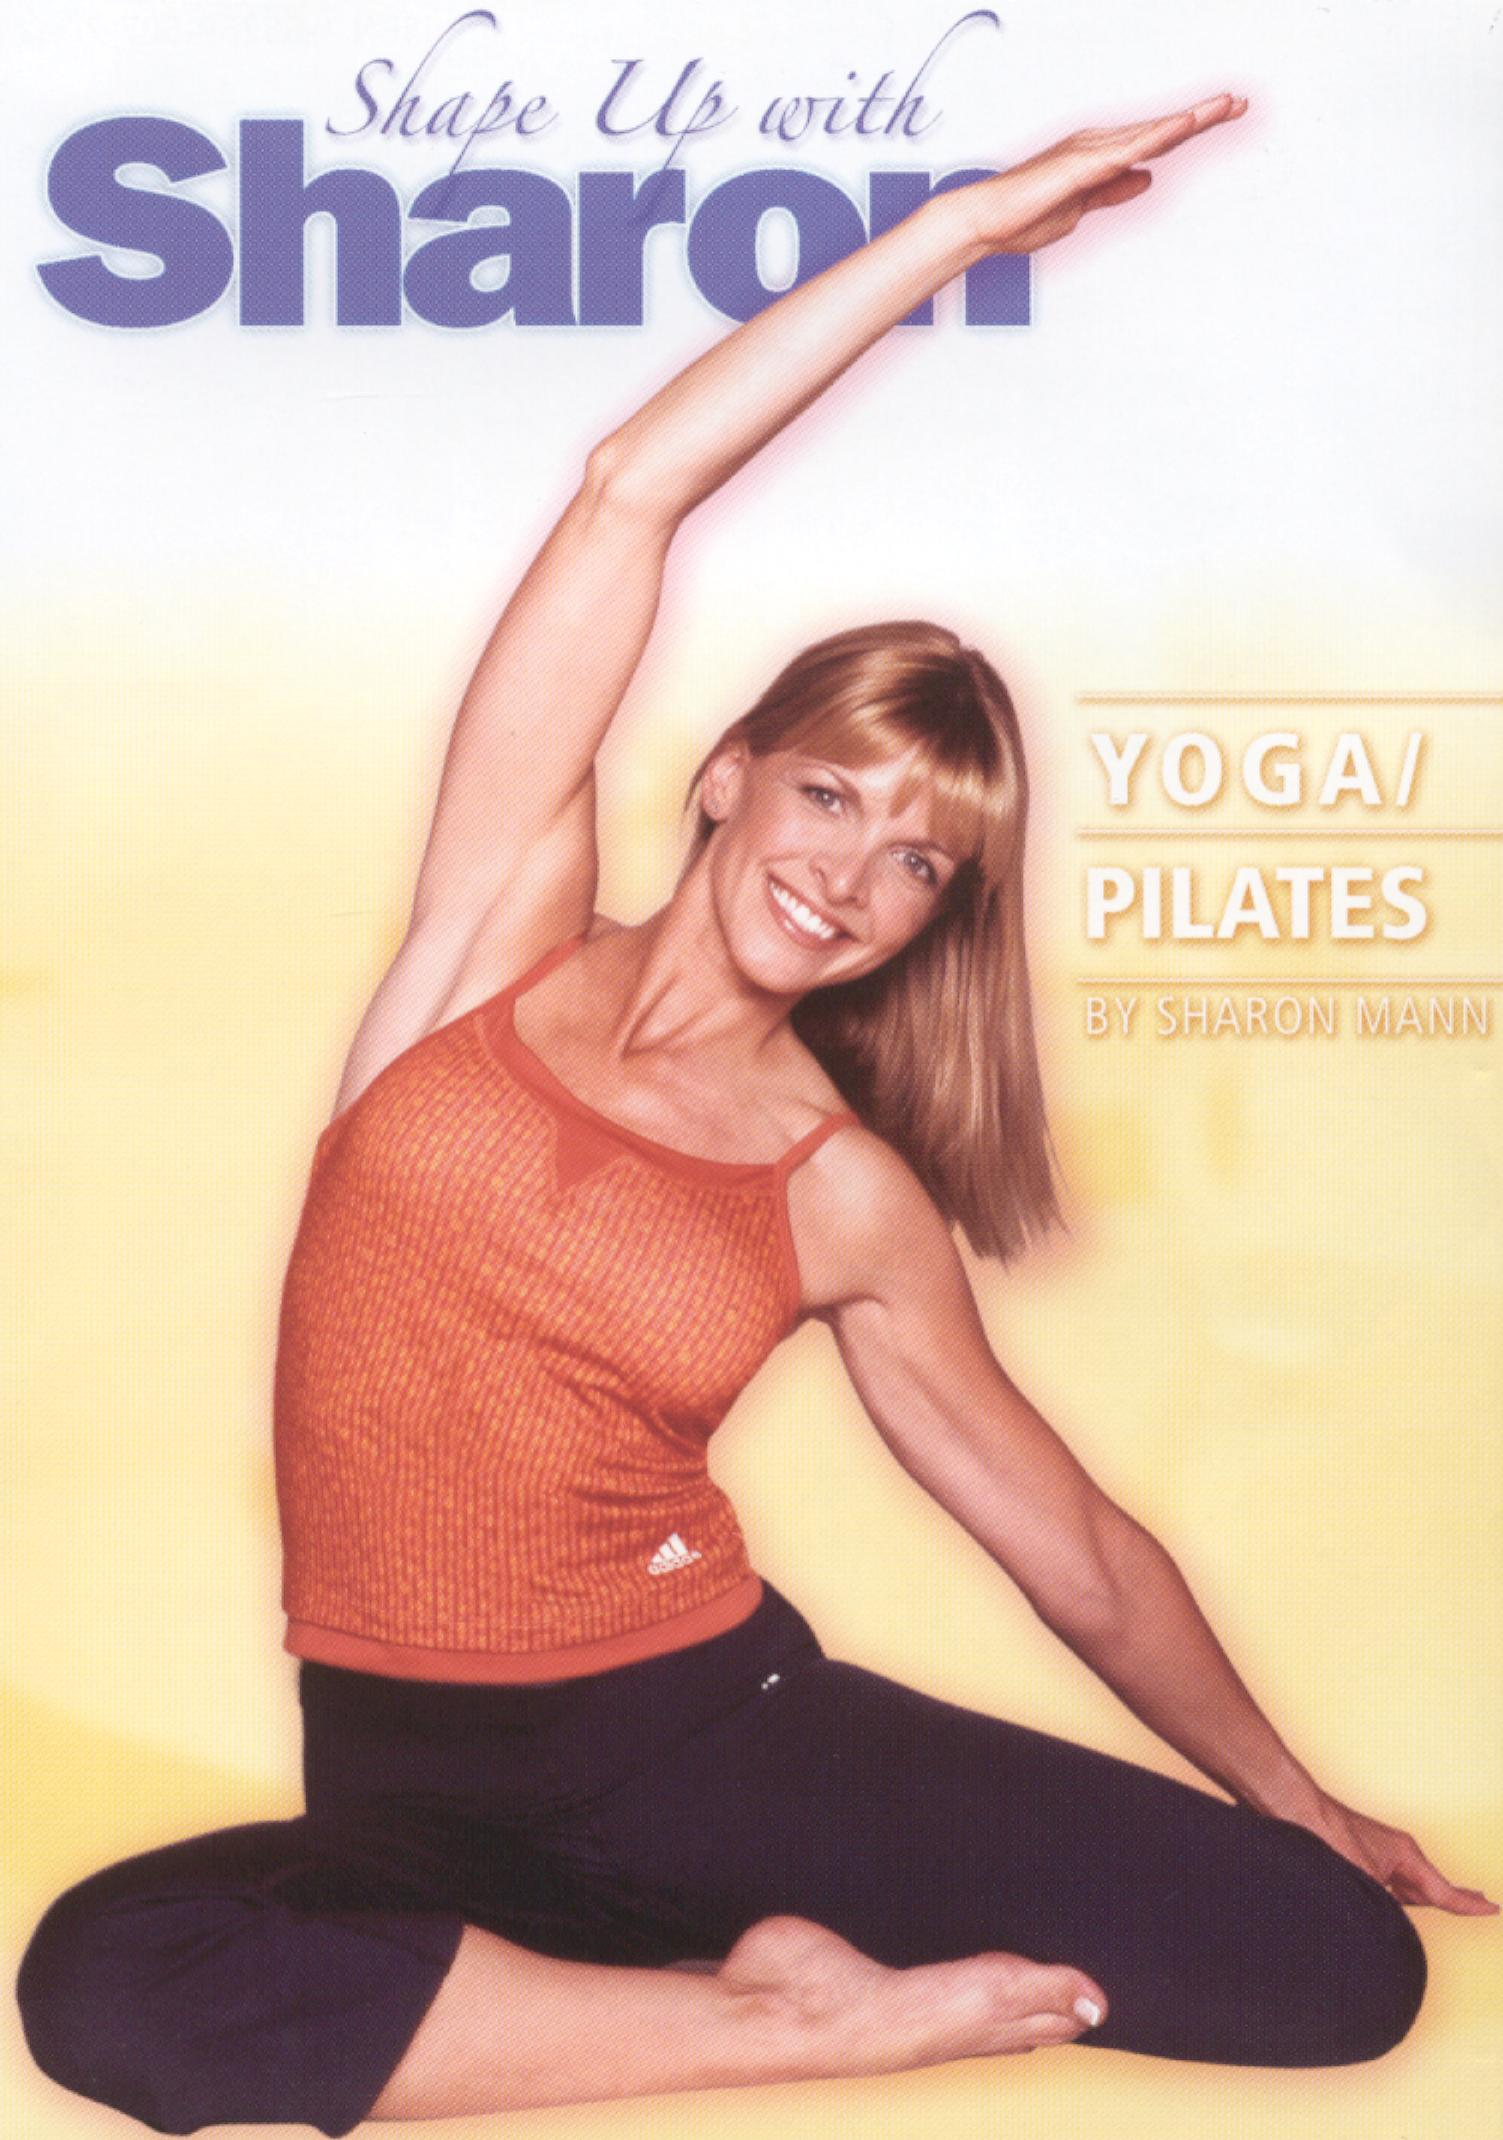 Sharon Mann: Shape Up With Sharon - Yoga/Pilates